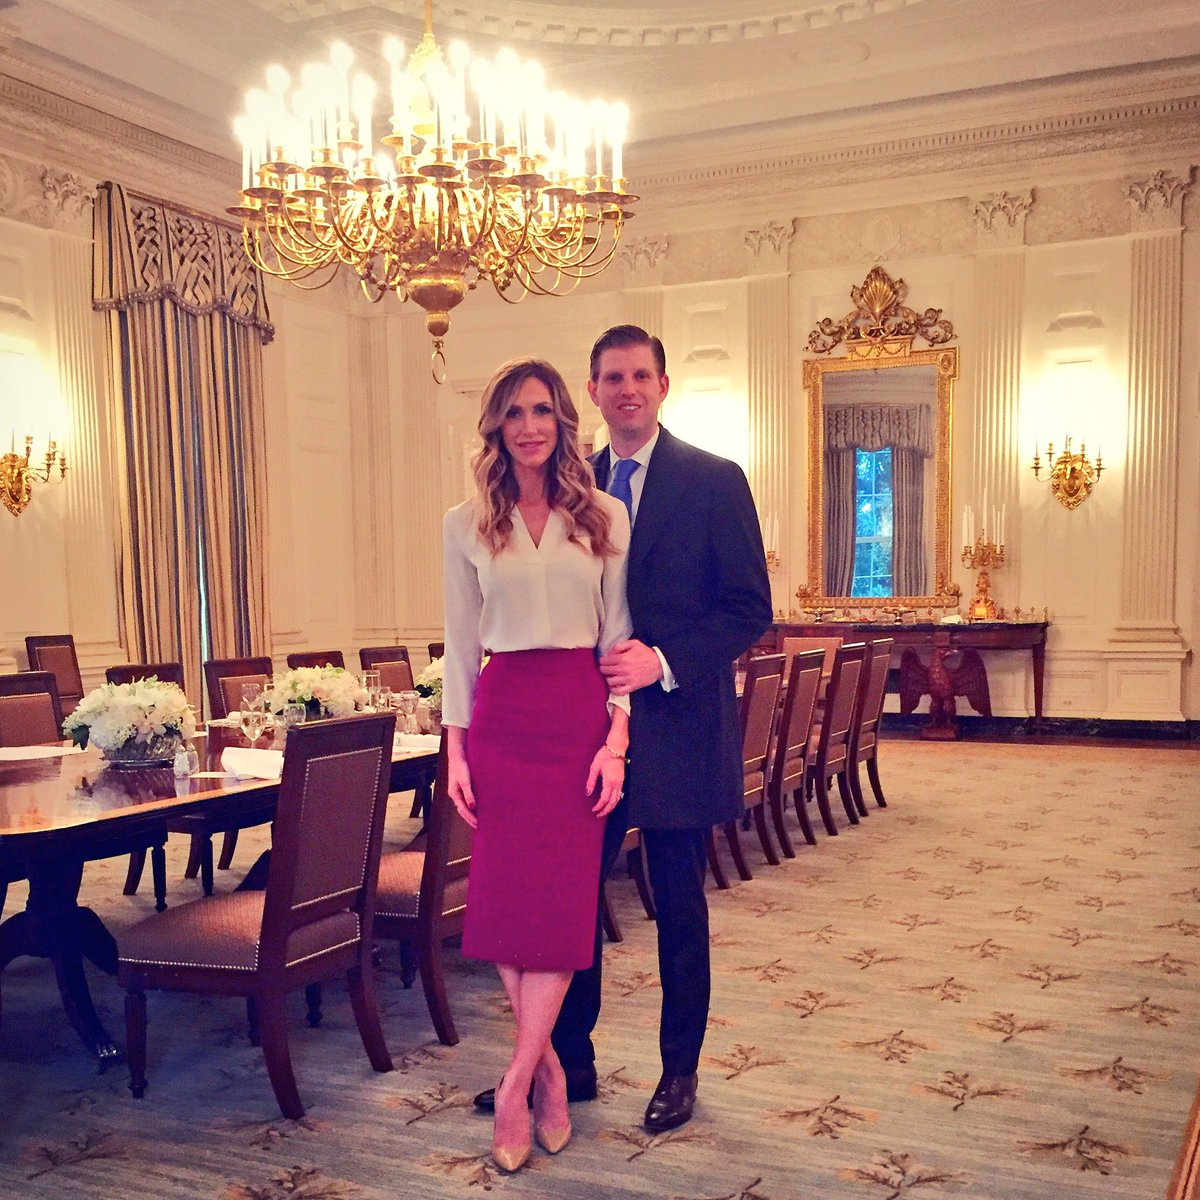 Lara Trump On Twitter Throwback In The White House Dining